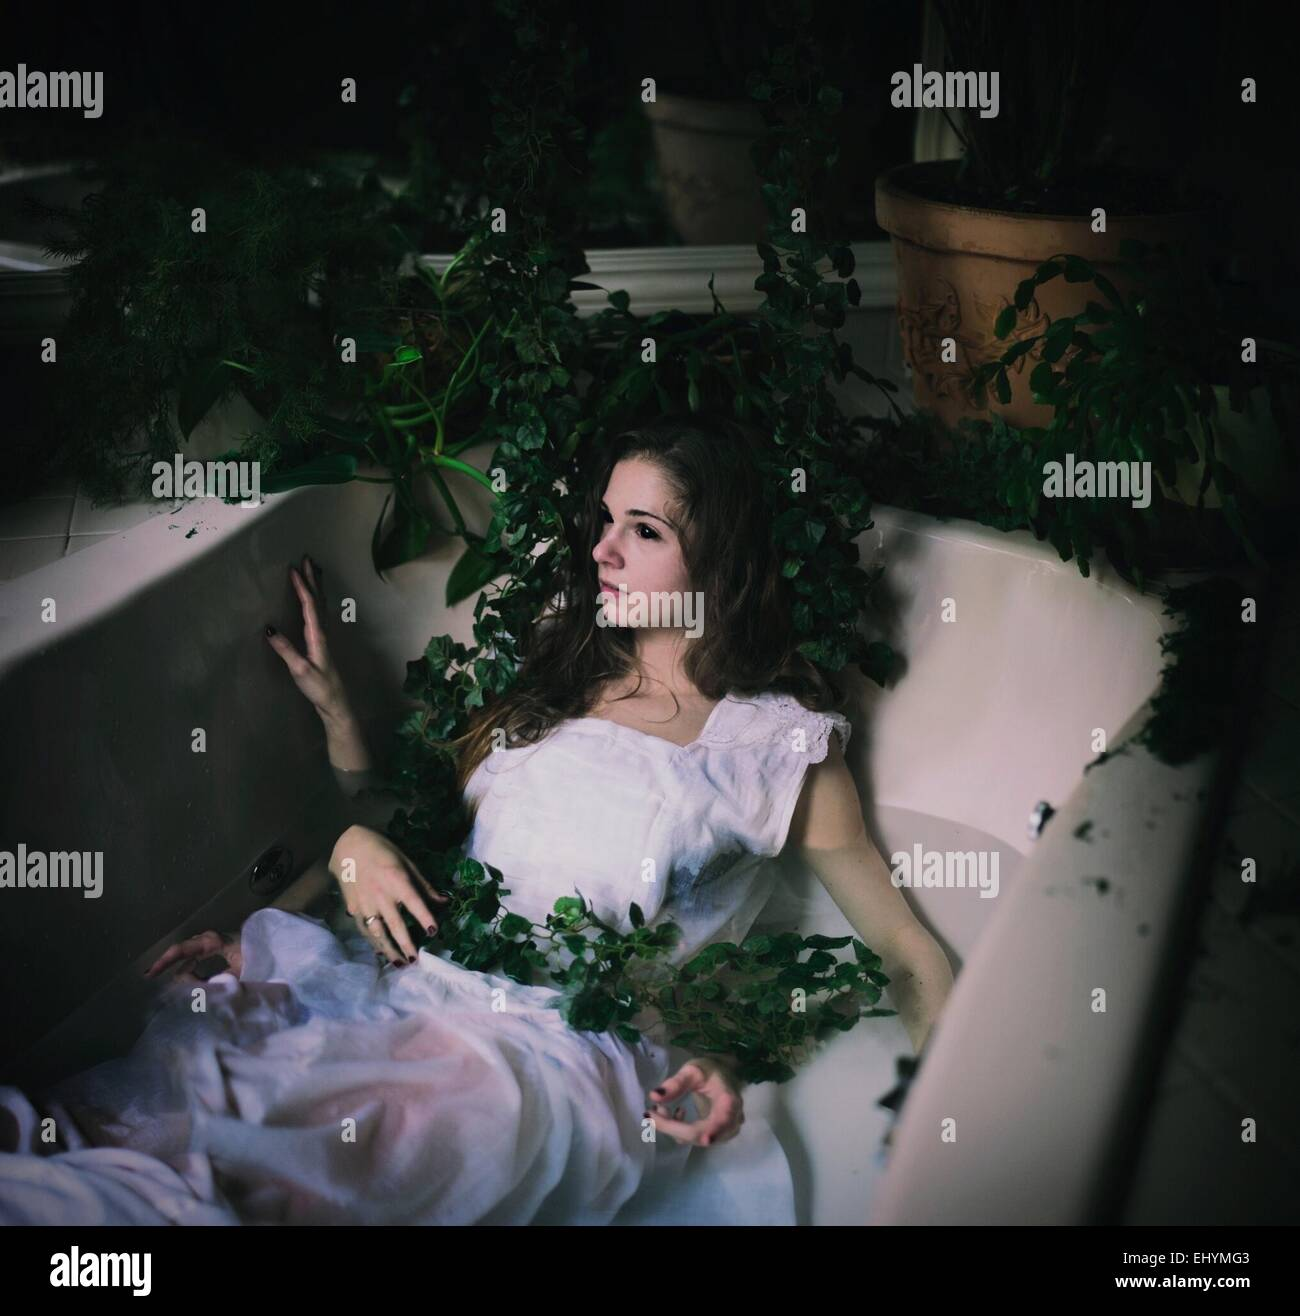 Young woman lying in a bath tub with lots of hands and vines - Stock Image